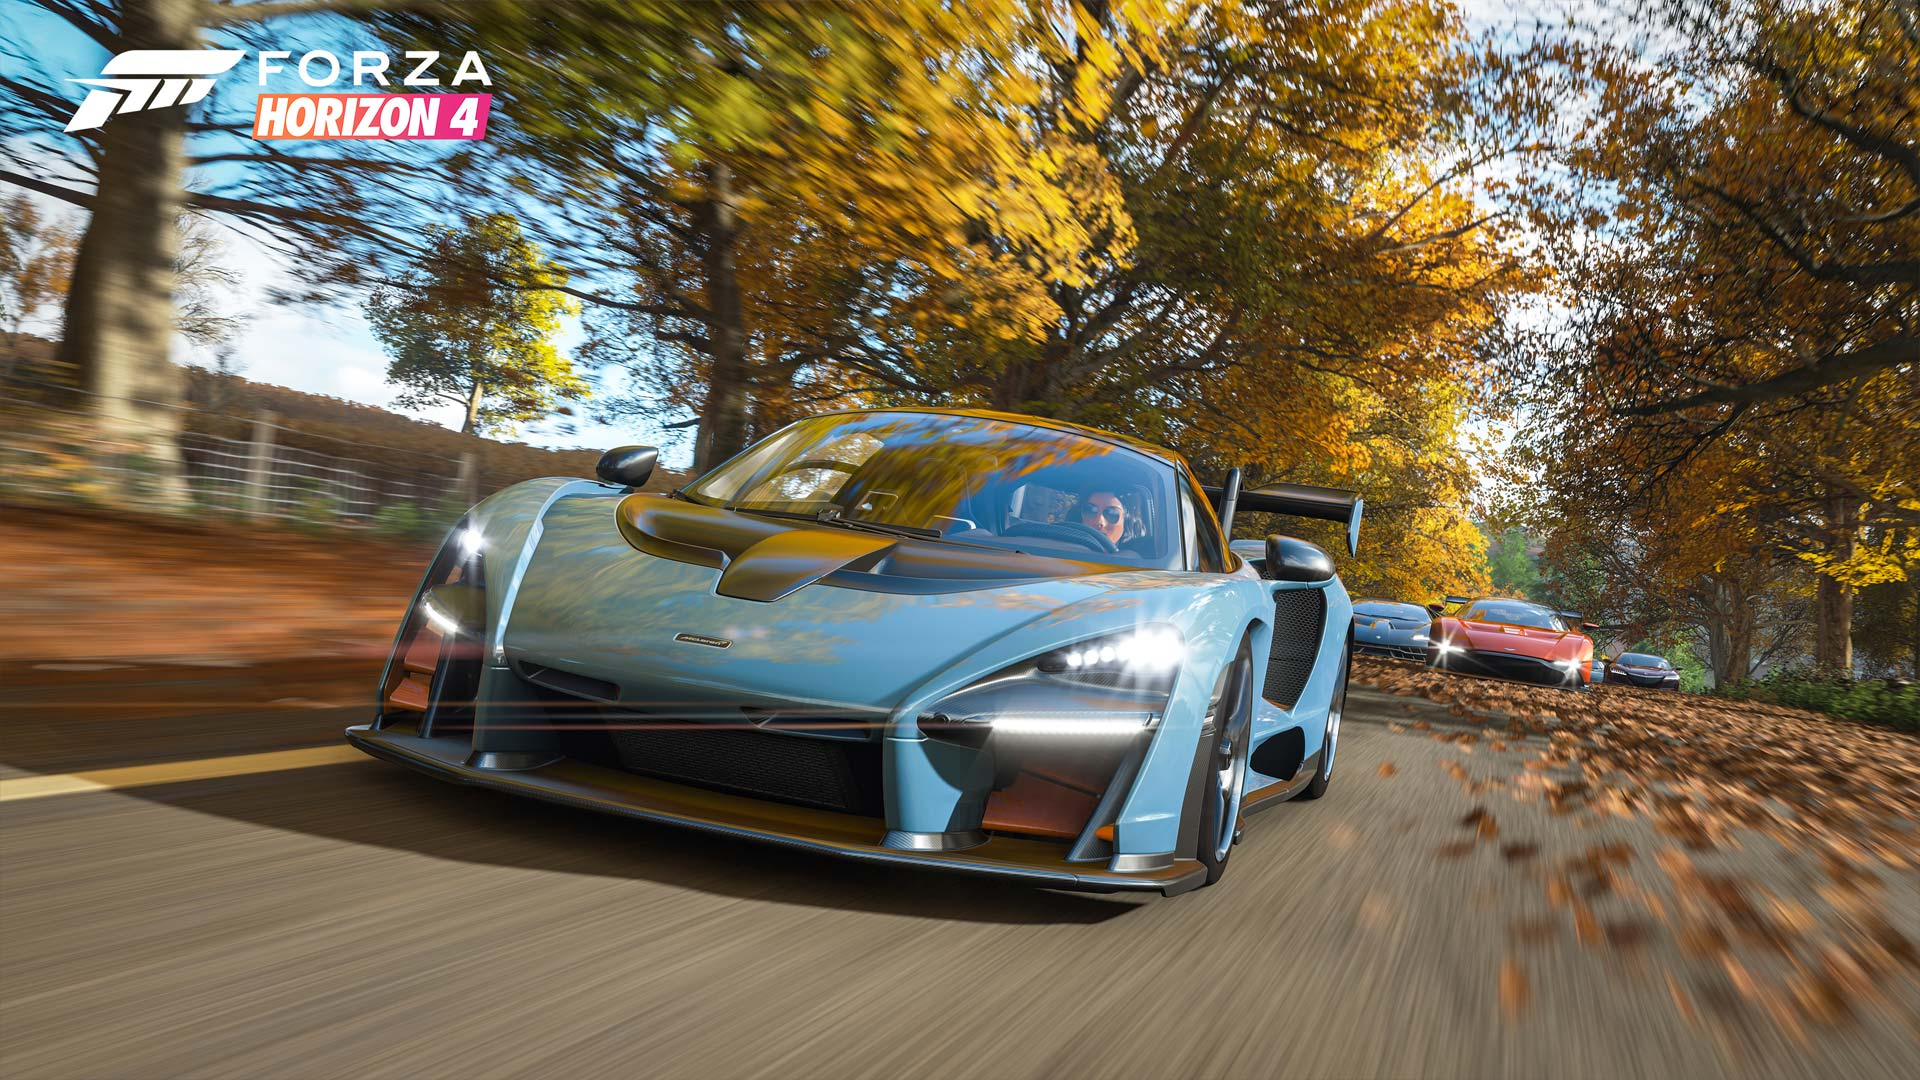 Forza Horizon 4 Xbox Series X Optimized